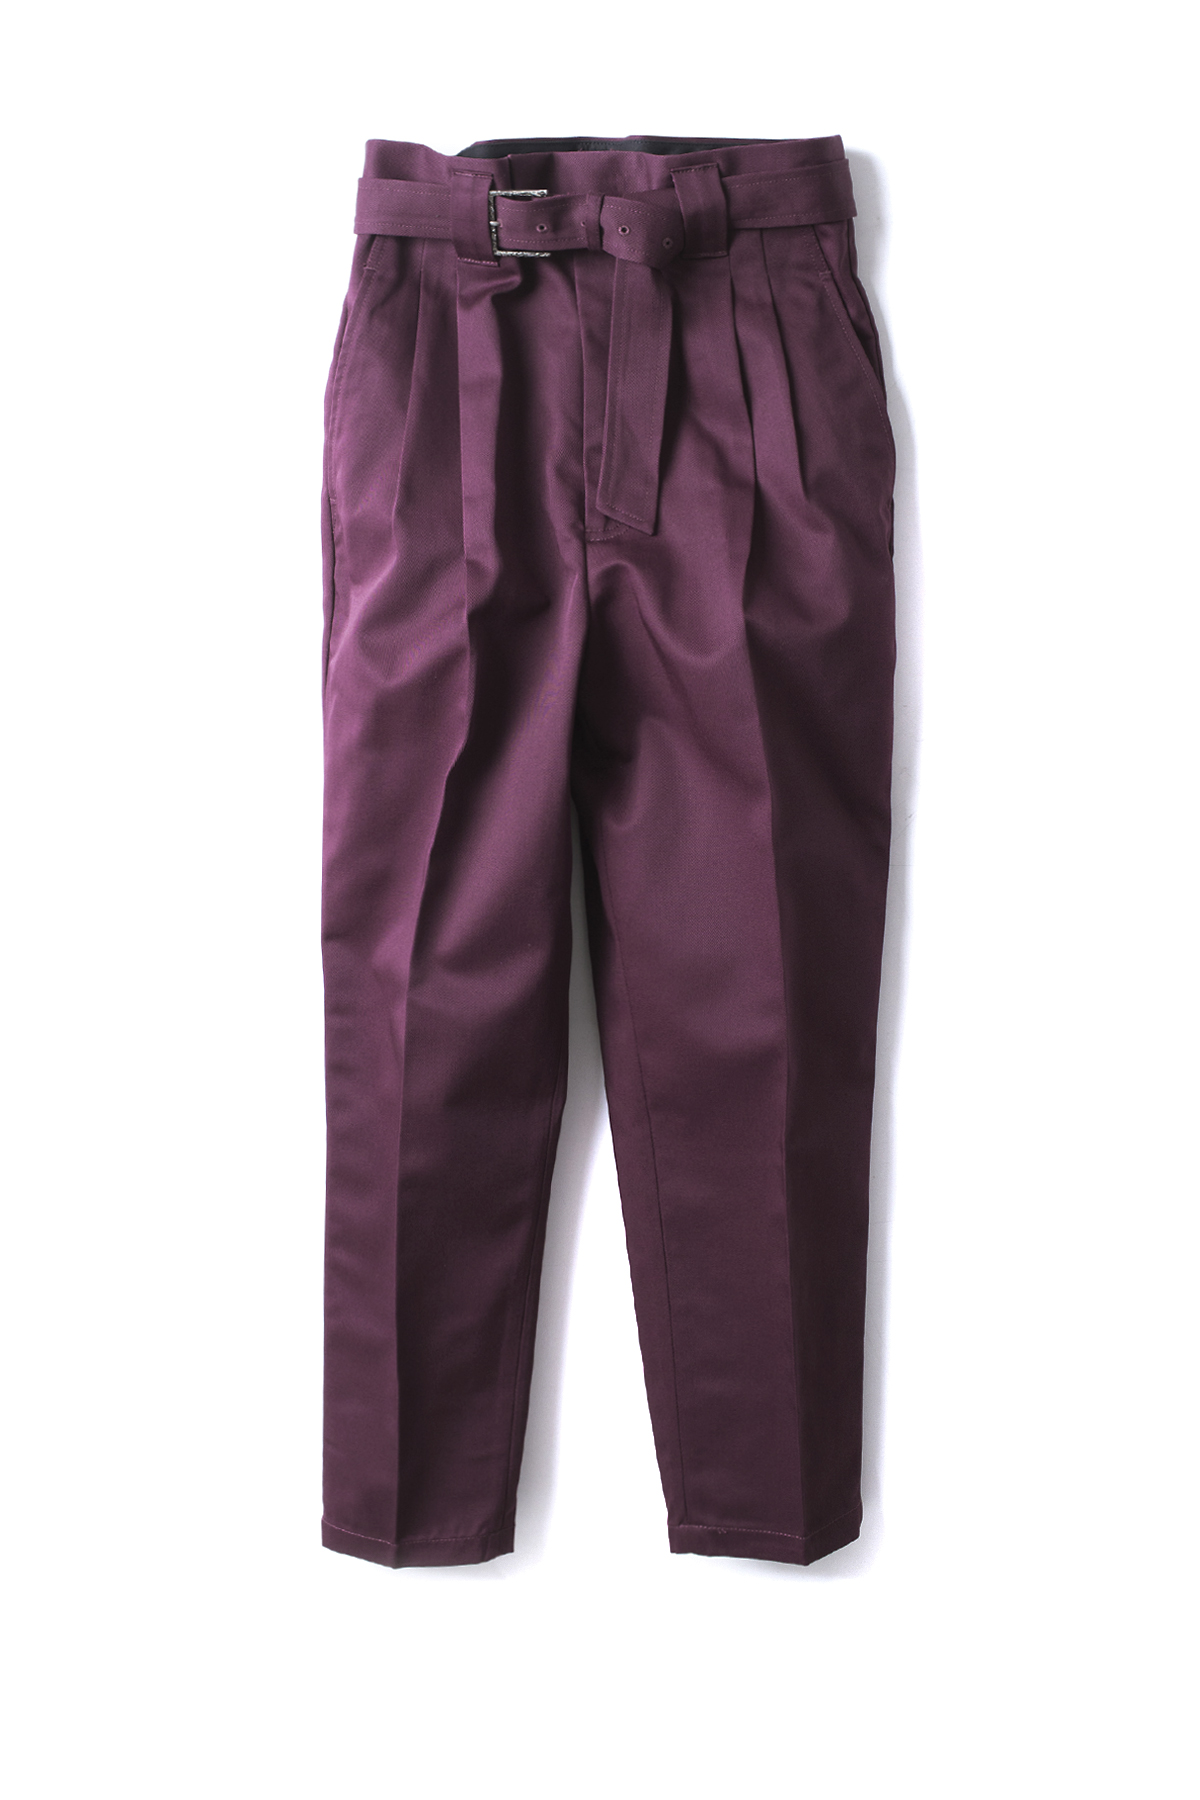 Christian Dada : DICKIES x Dada Pants (Burgundy)